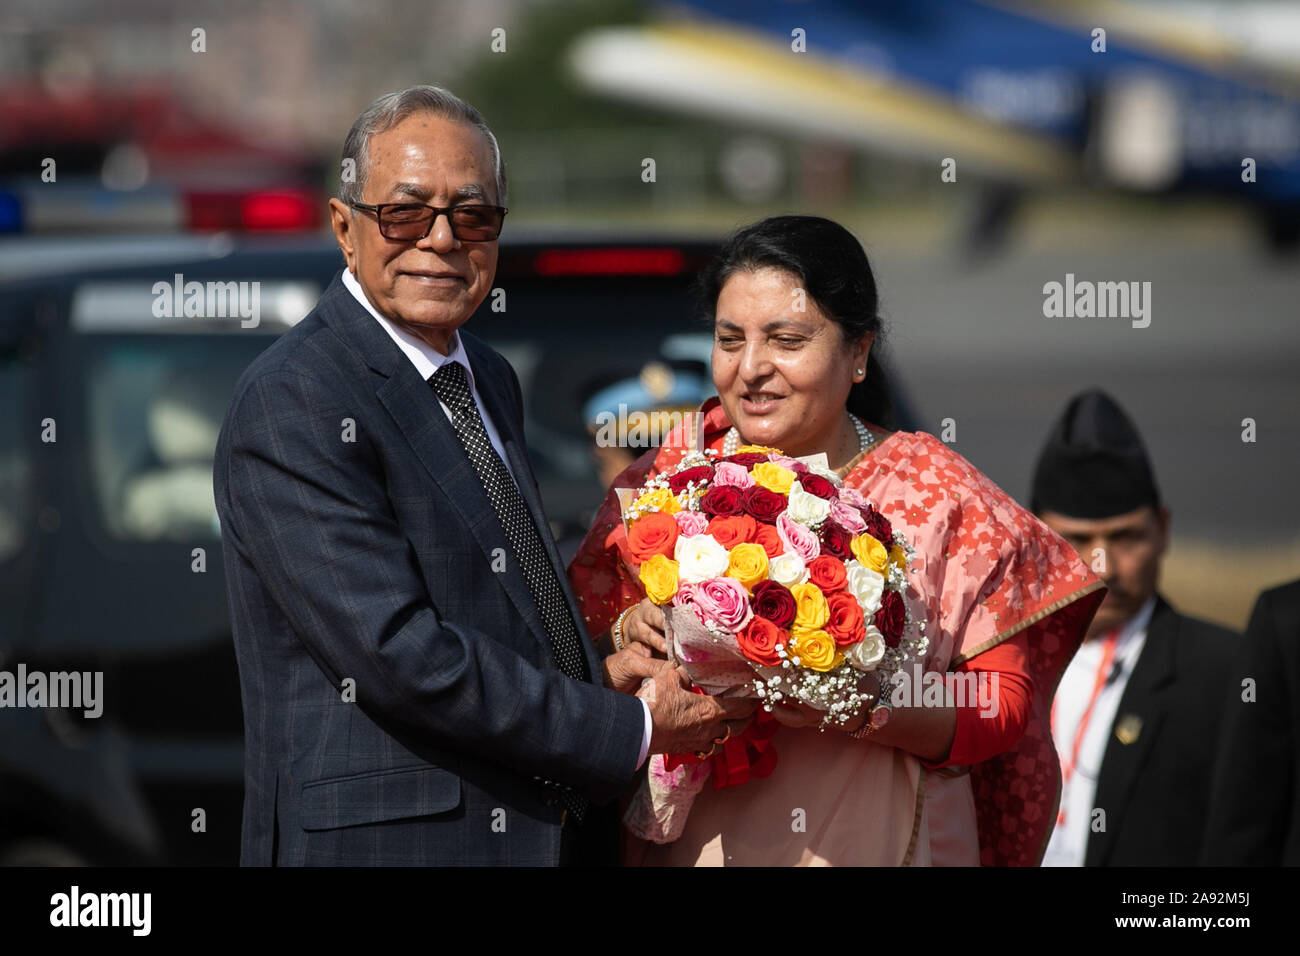 Kathmandu, Nepal. 20th Nov, 2019. President of Bangladesh, Abdul Hamid (R) receives a bouquet of flowers from Nepal's President, Bidhya Devi Bhandari (L) upon his arrival at Tribhuvan International Airport. President of Bangladesh is on a three-day official goodwill visit to Nepal at the invitation of Nepal's President. Credit: SOPA Images Limited/Alamy Live News Stock Photo